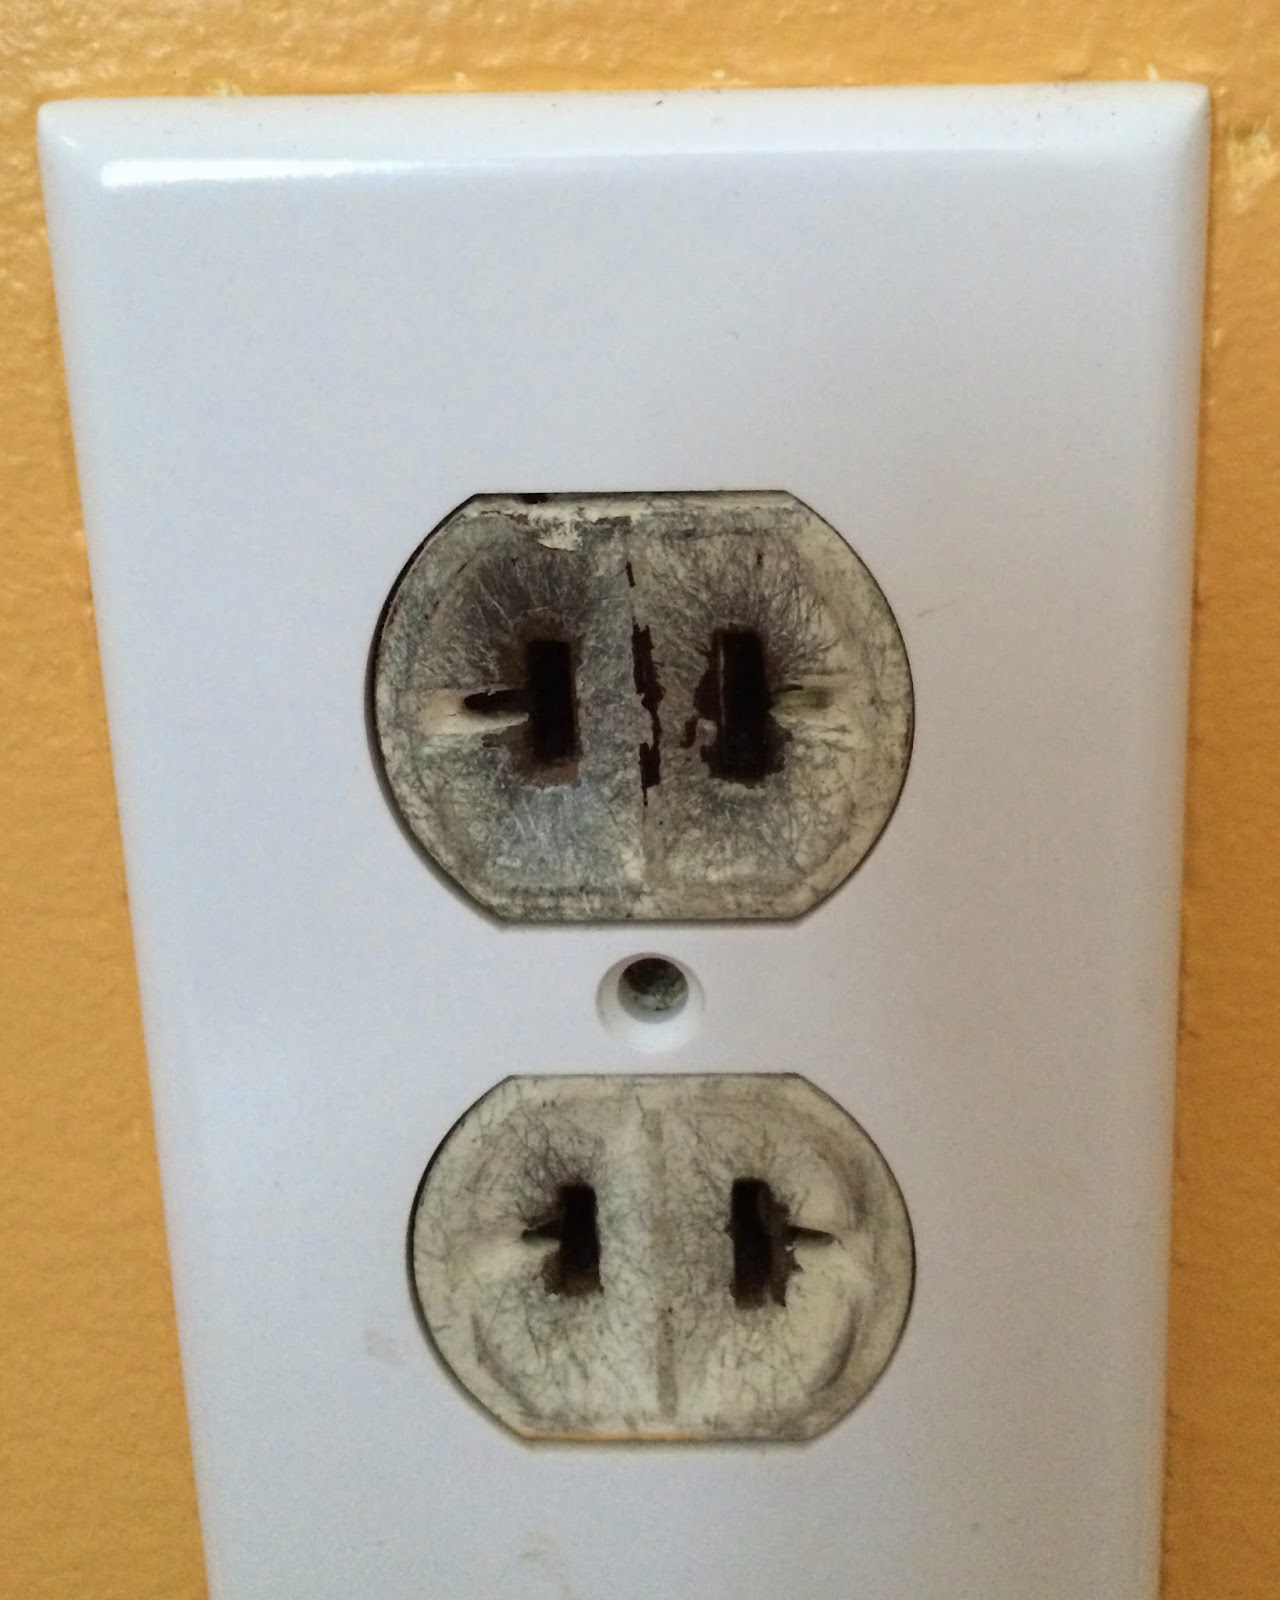 3 way outlet cat 5 wall jack diagram us 2 prong plug wiring free engine image for user